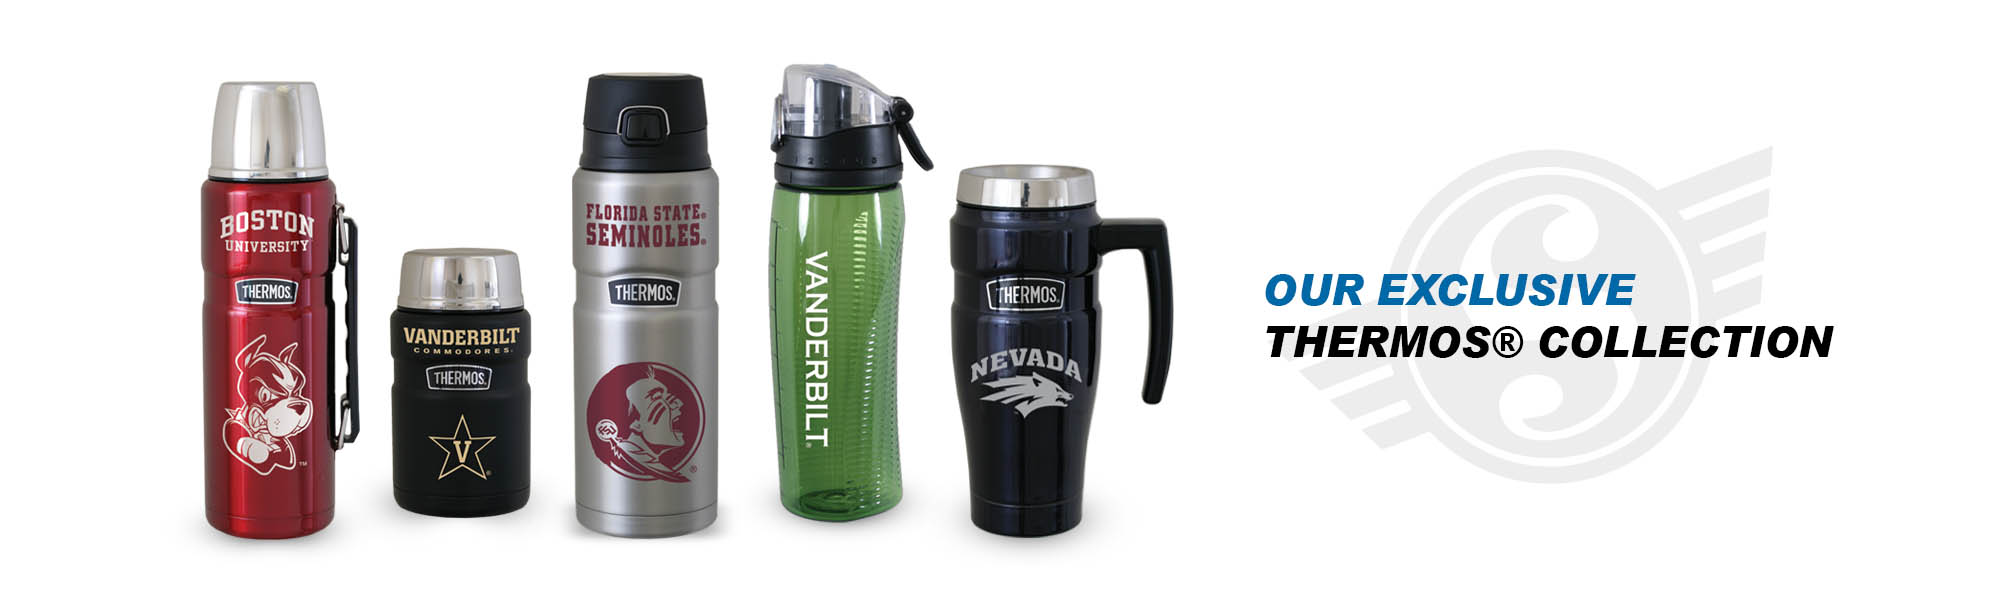 https://www.spiritproducts.com/products/product-category/drinkware/brands/thermos/